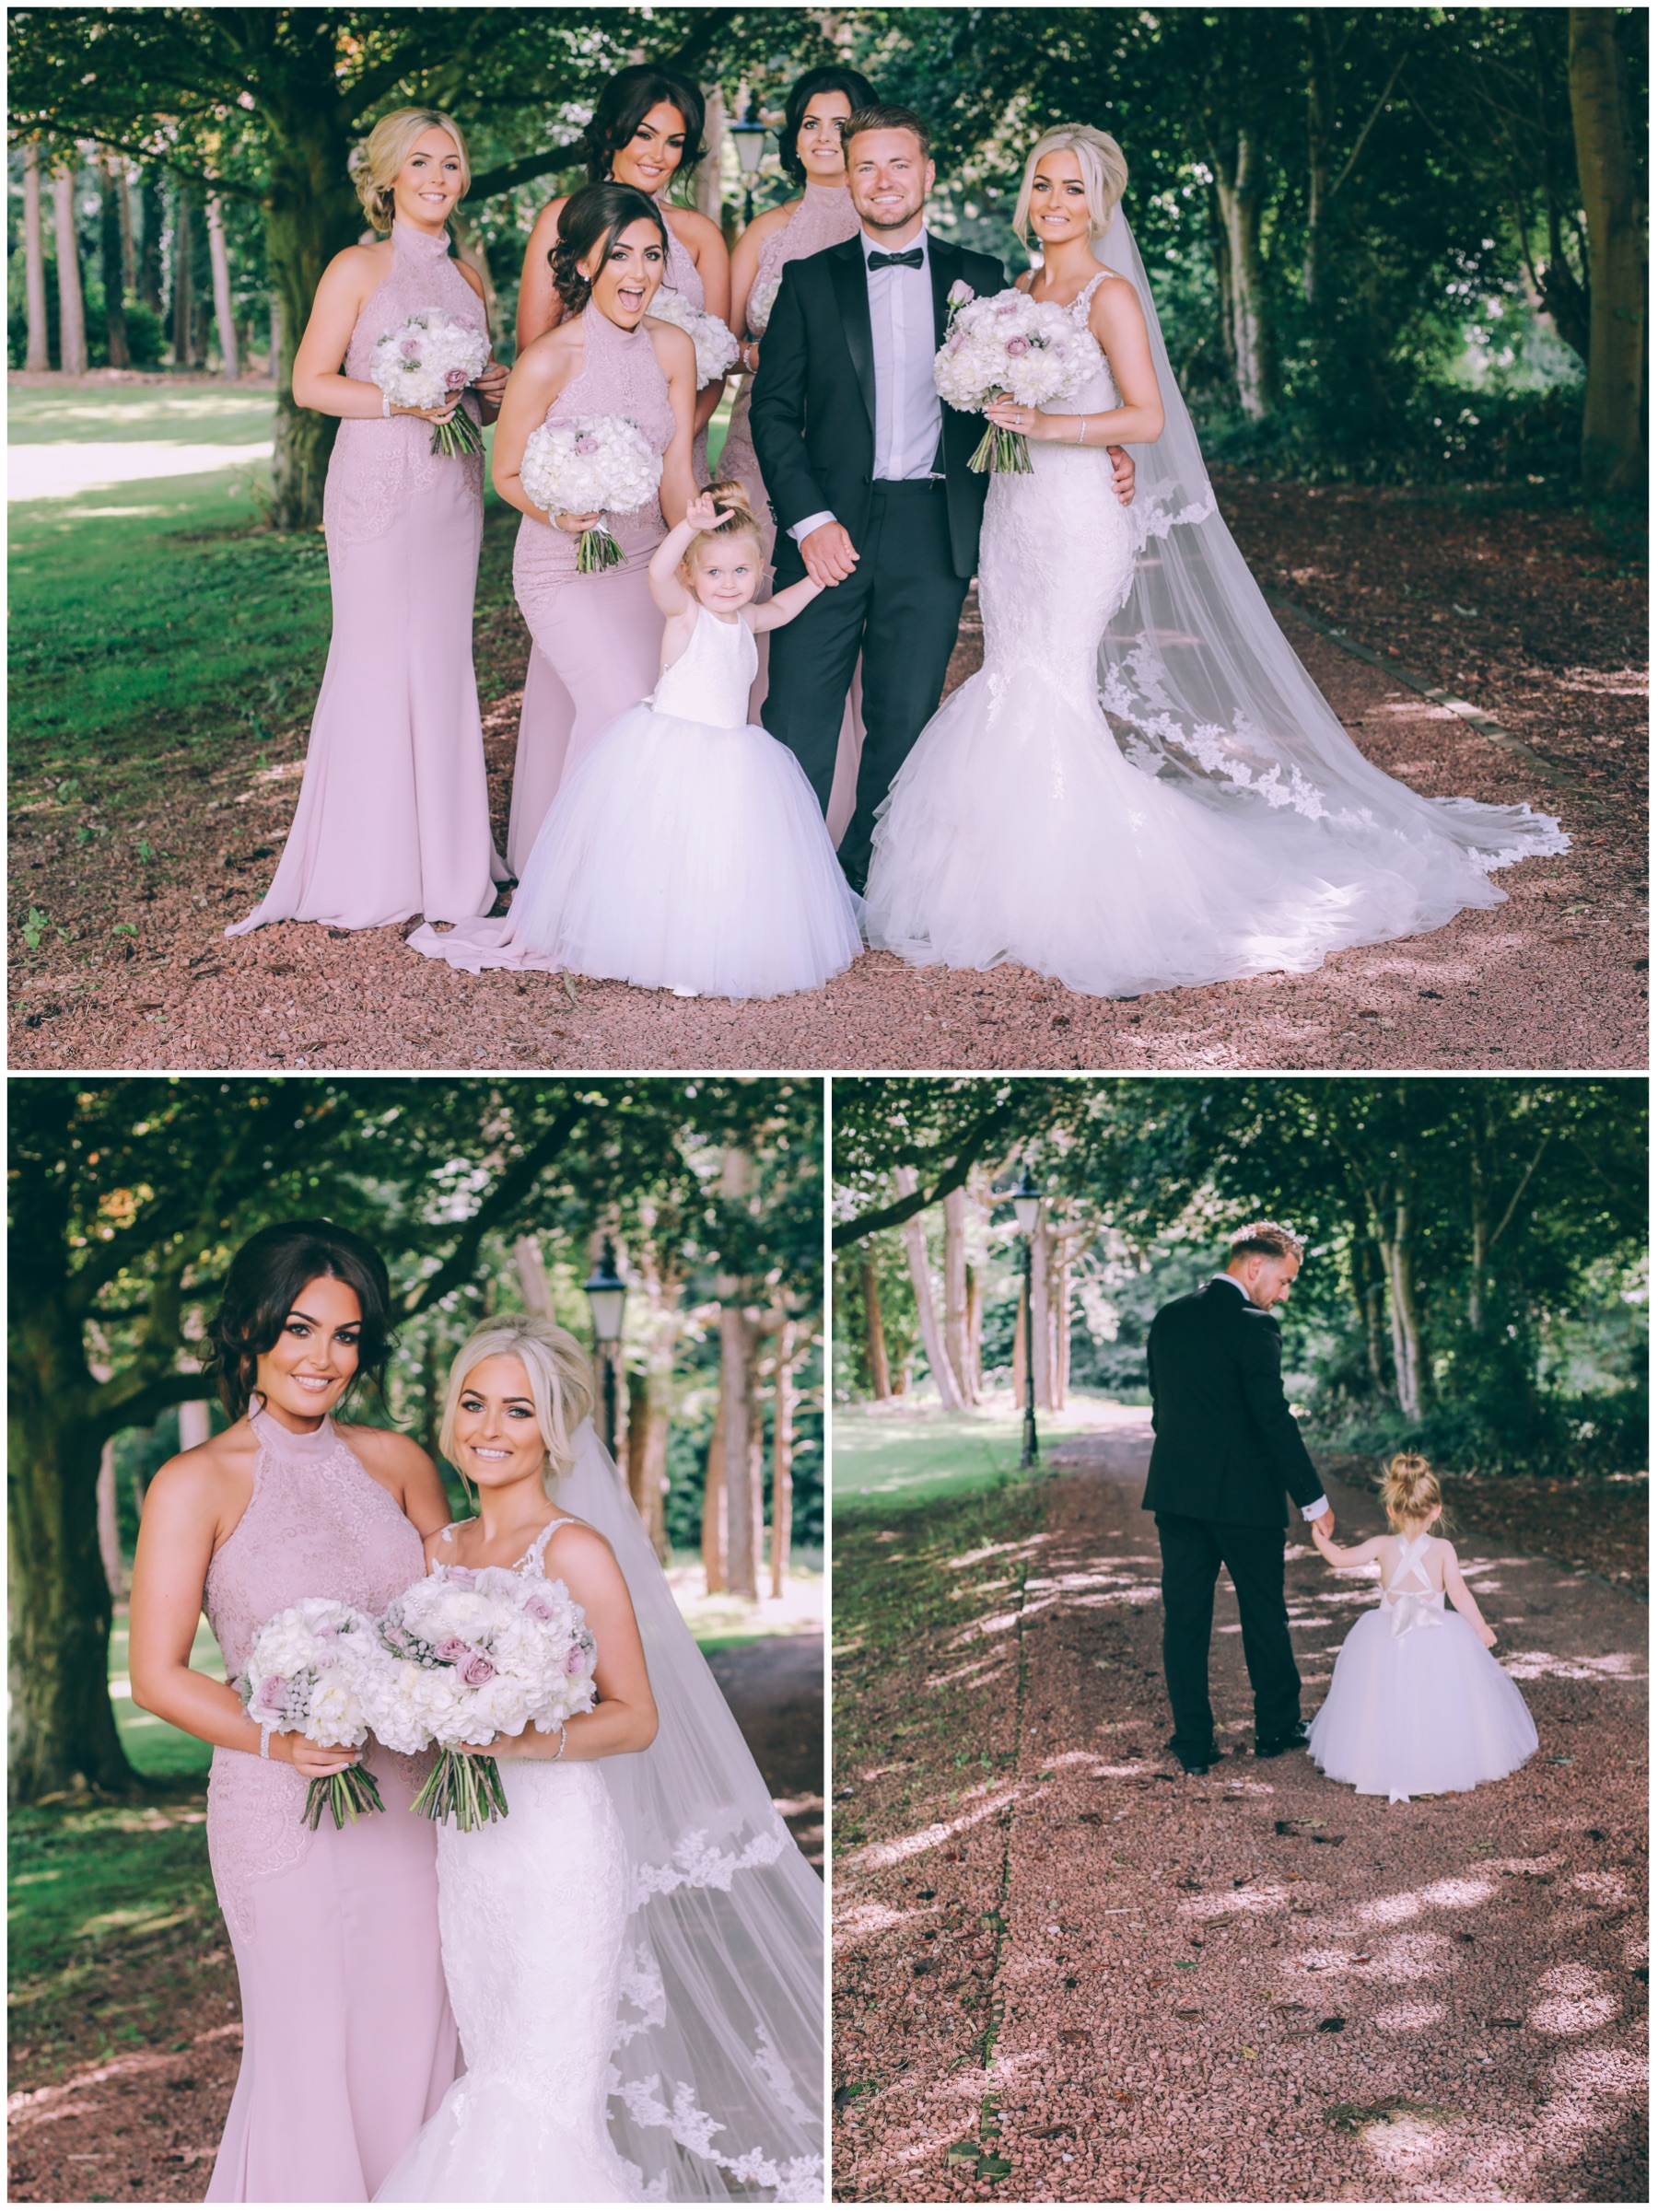 Wedding party outside photography